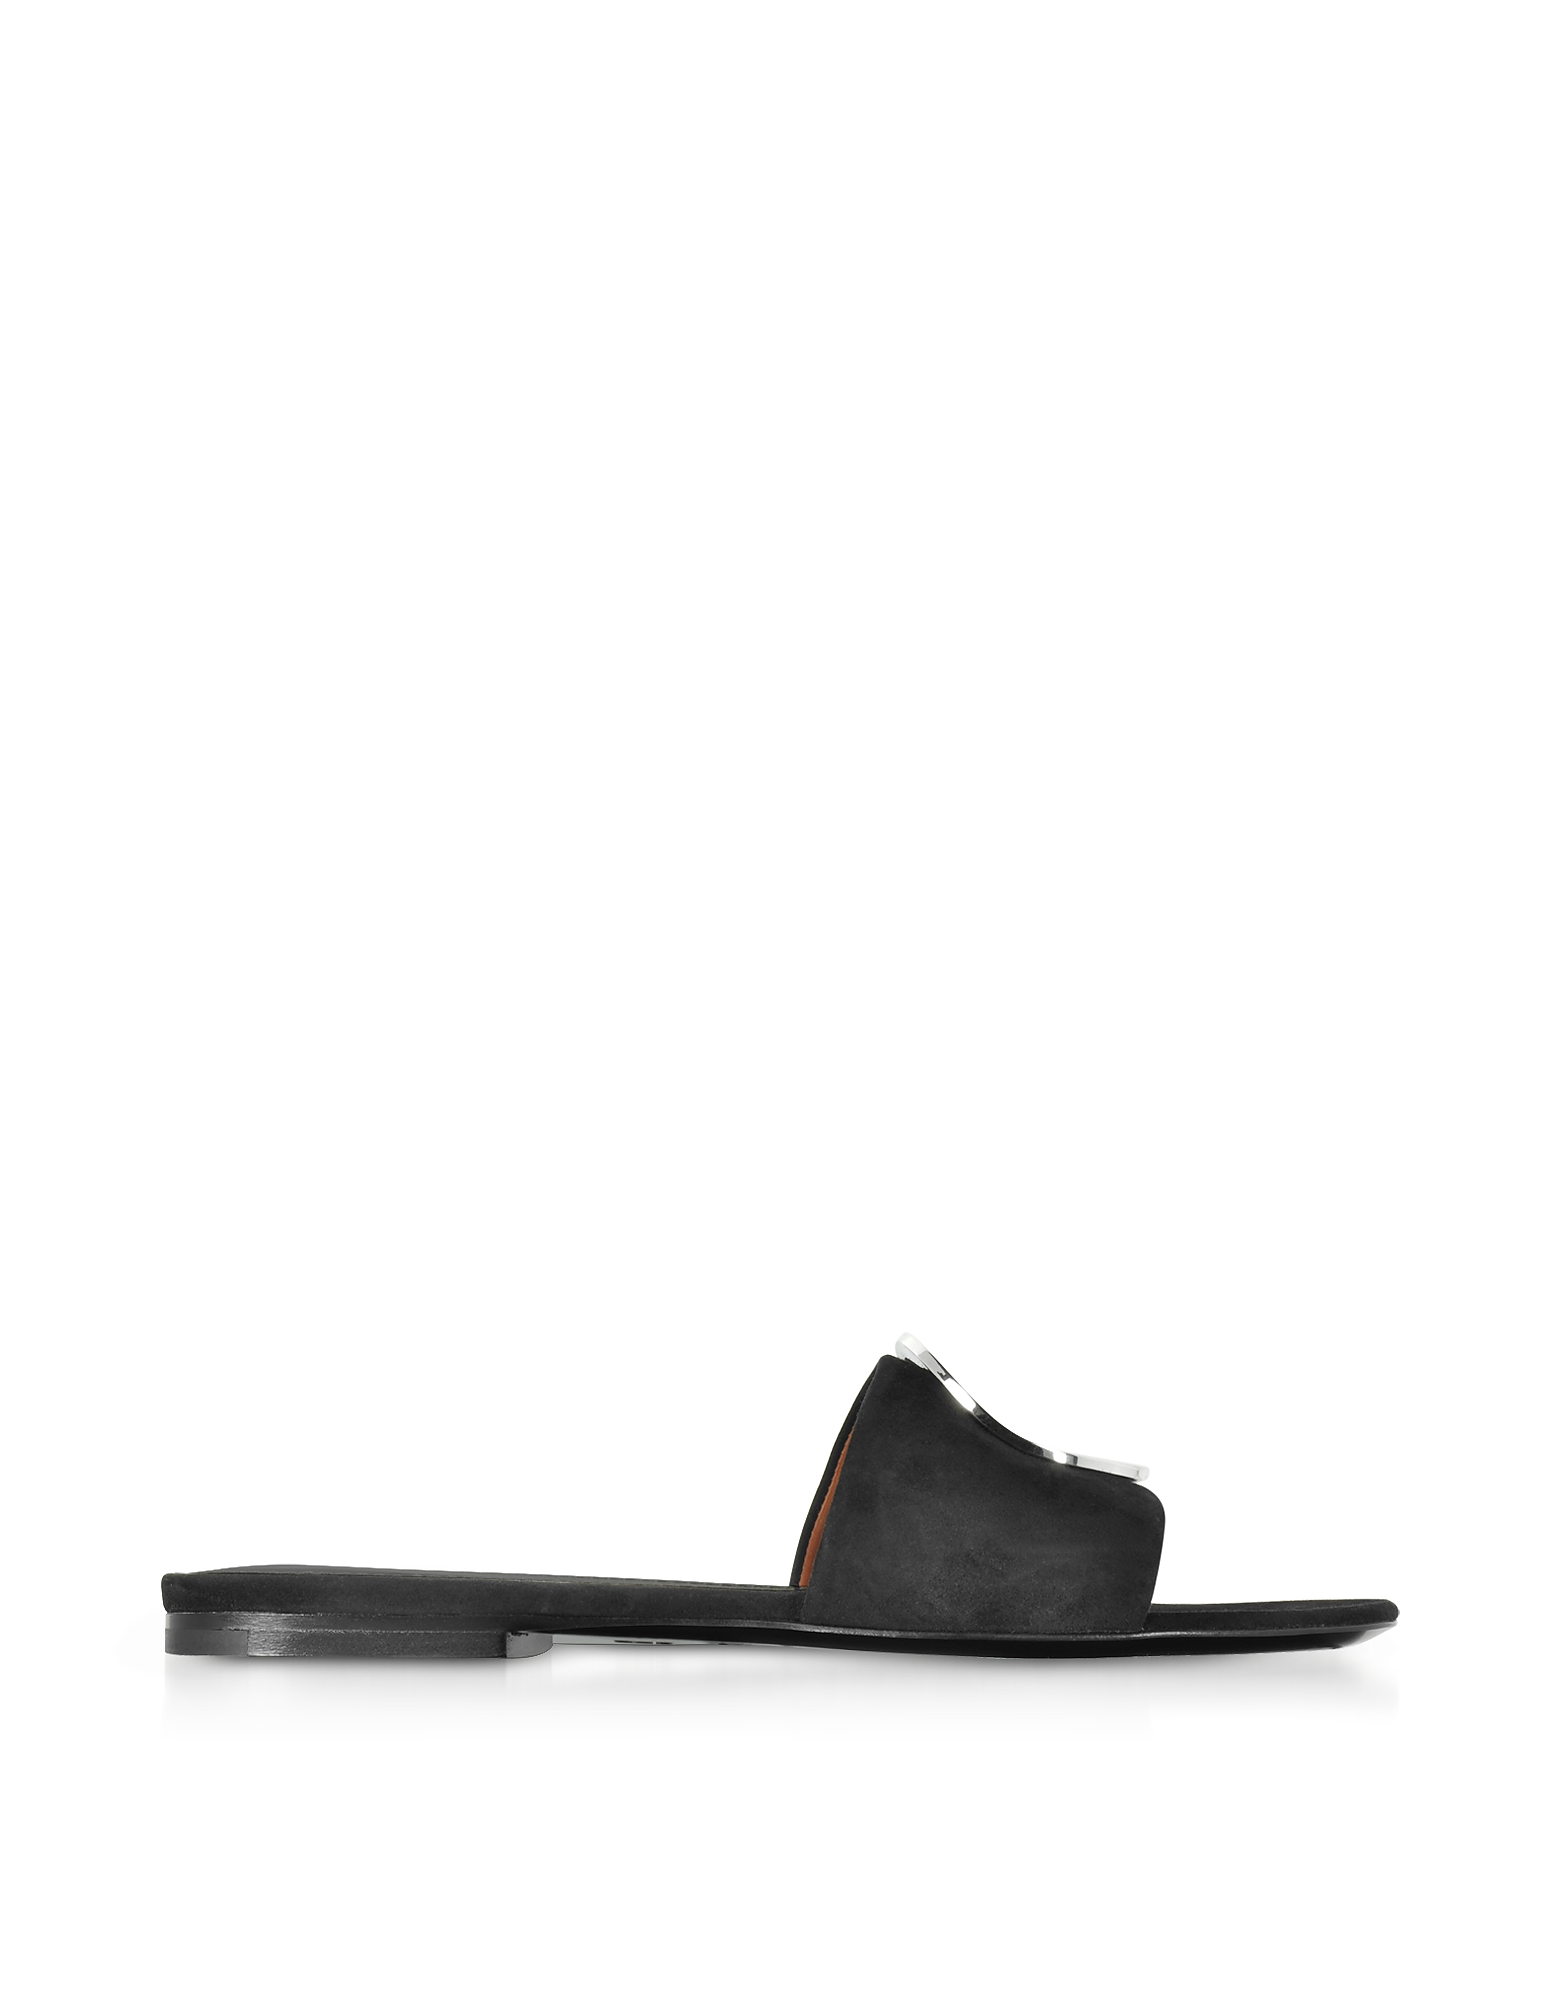 Proenza Schouler Shoes, Black Suede Slide Sandals